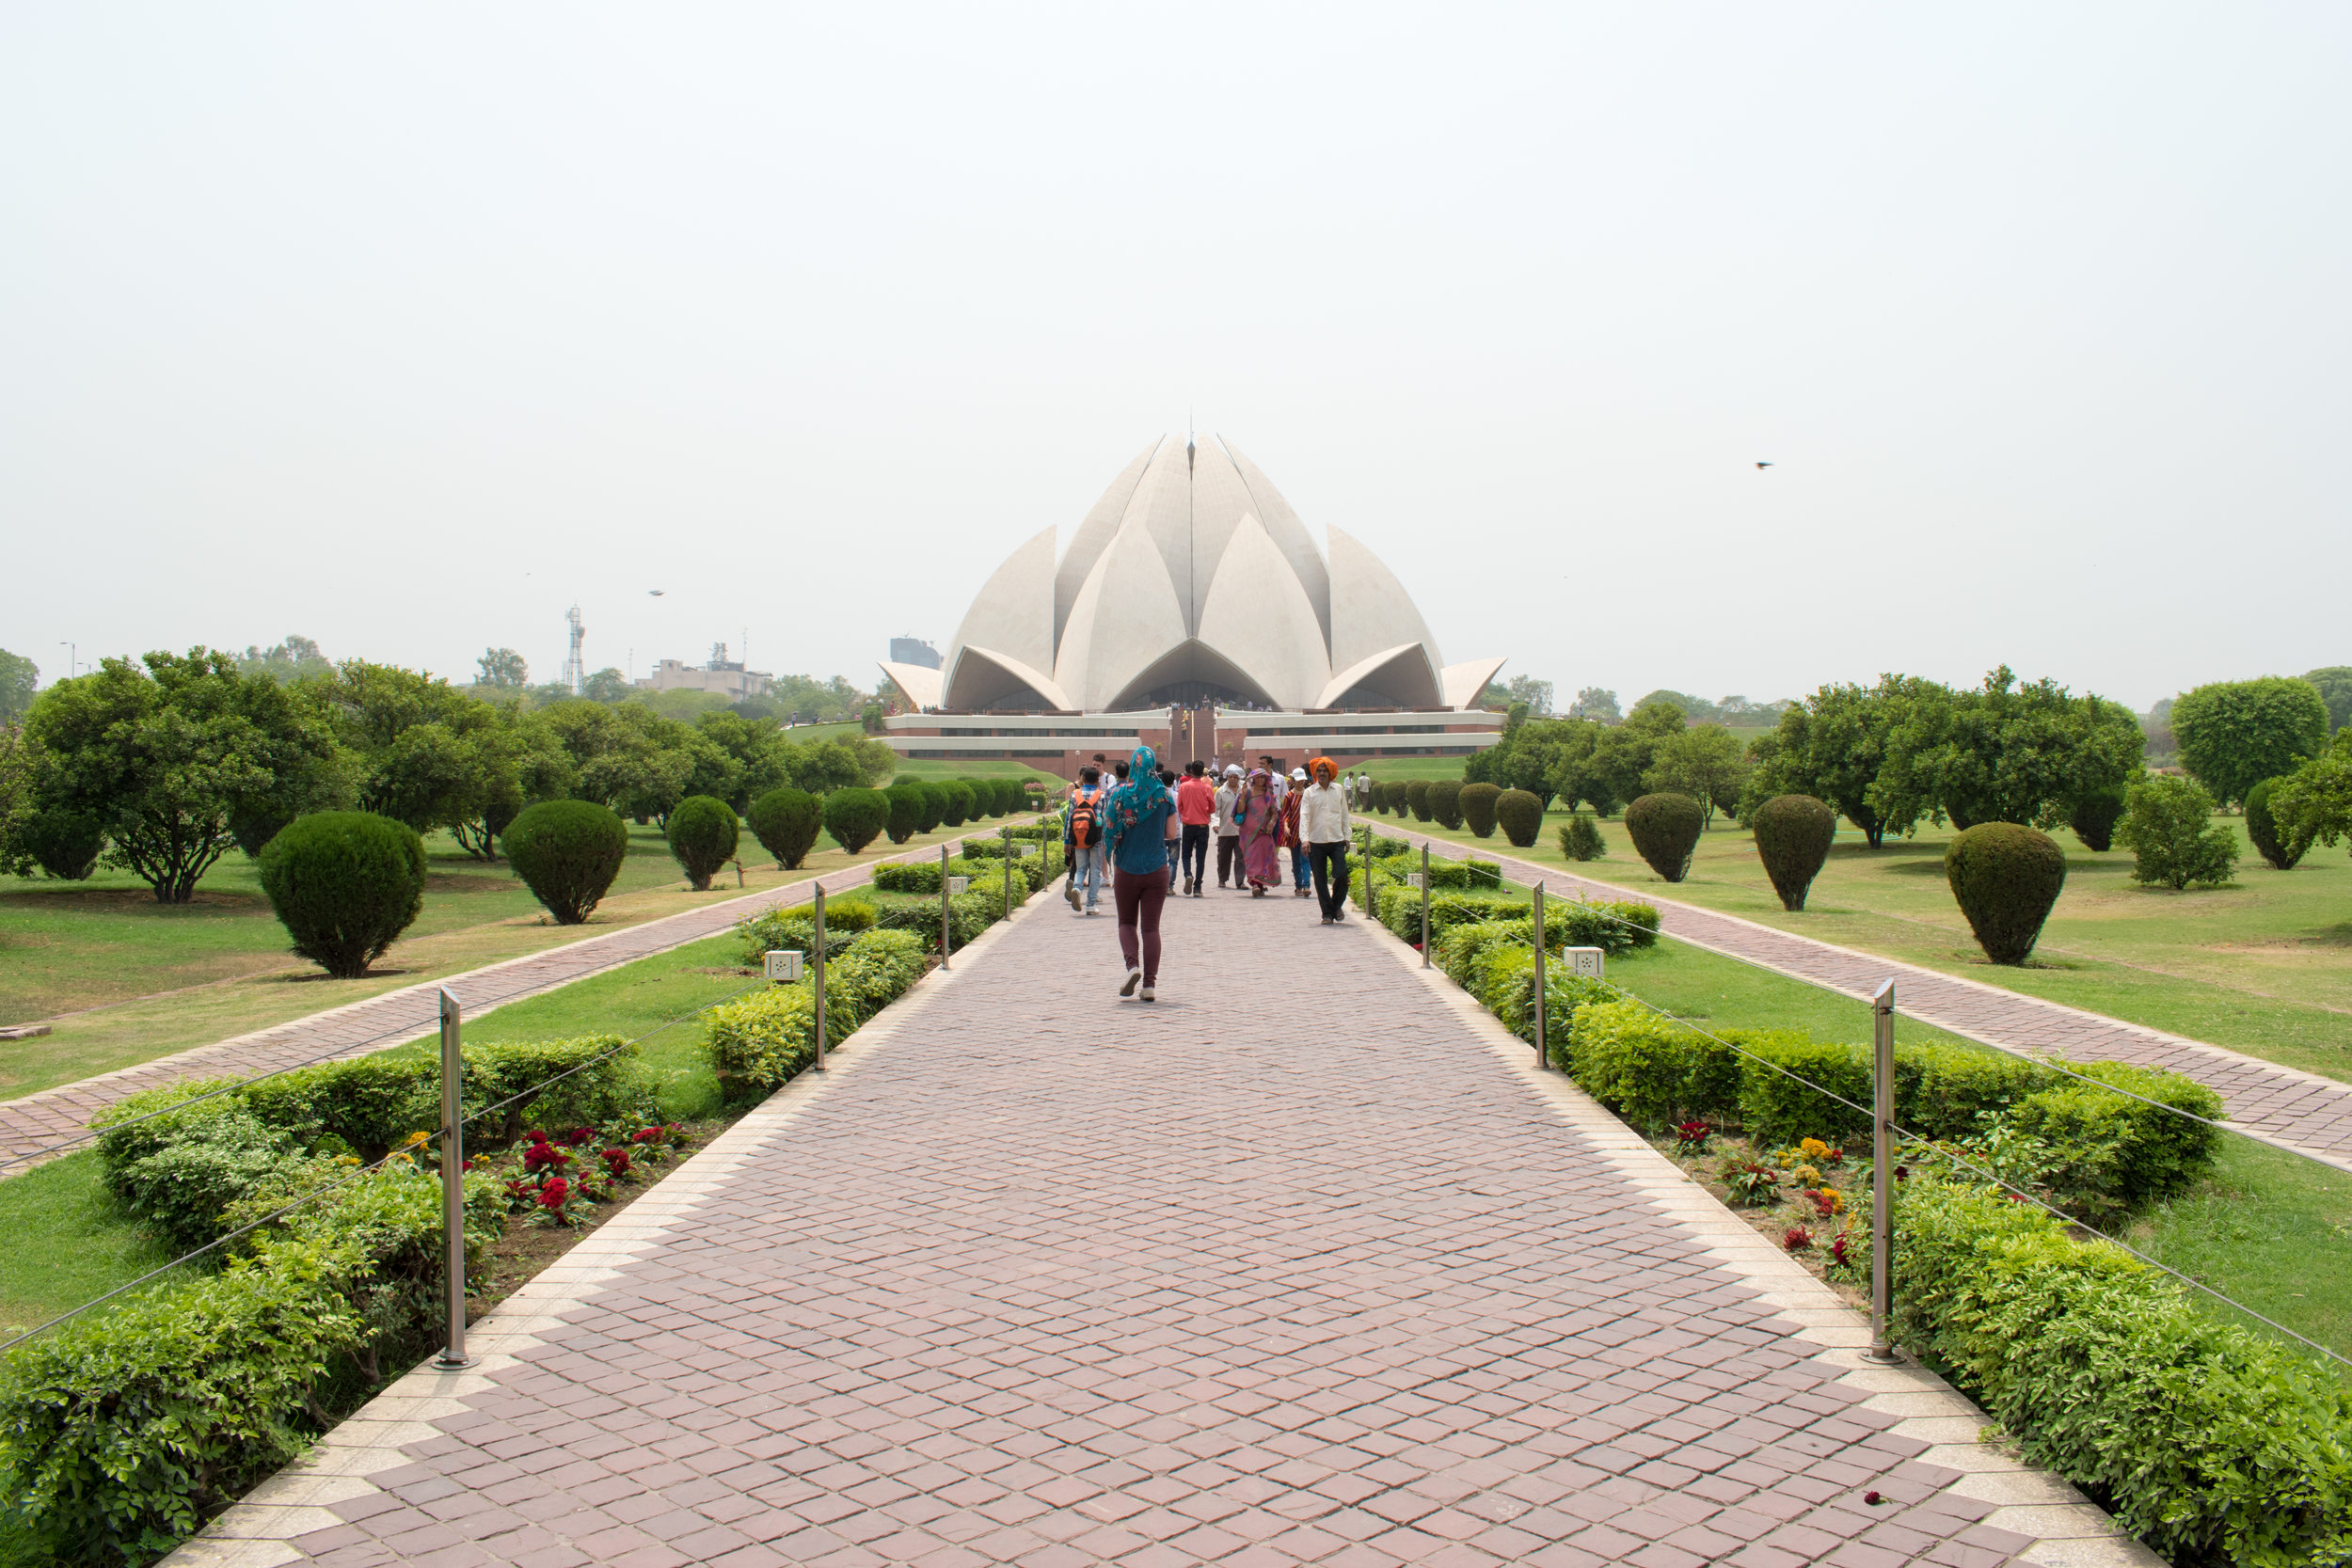 The Lotus Temple in Delhi, India